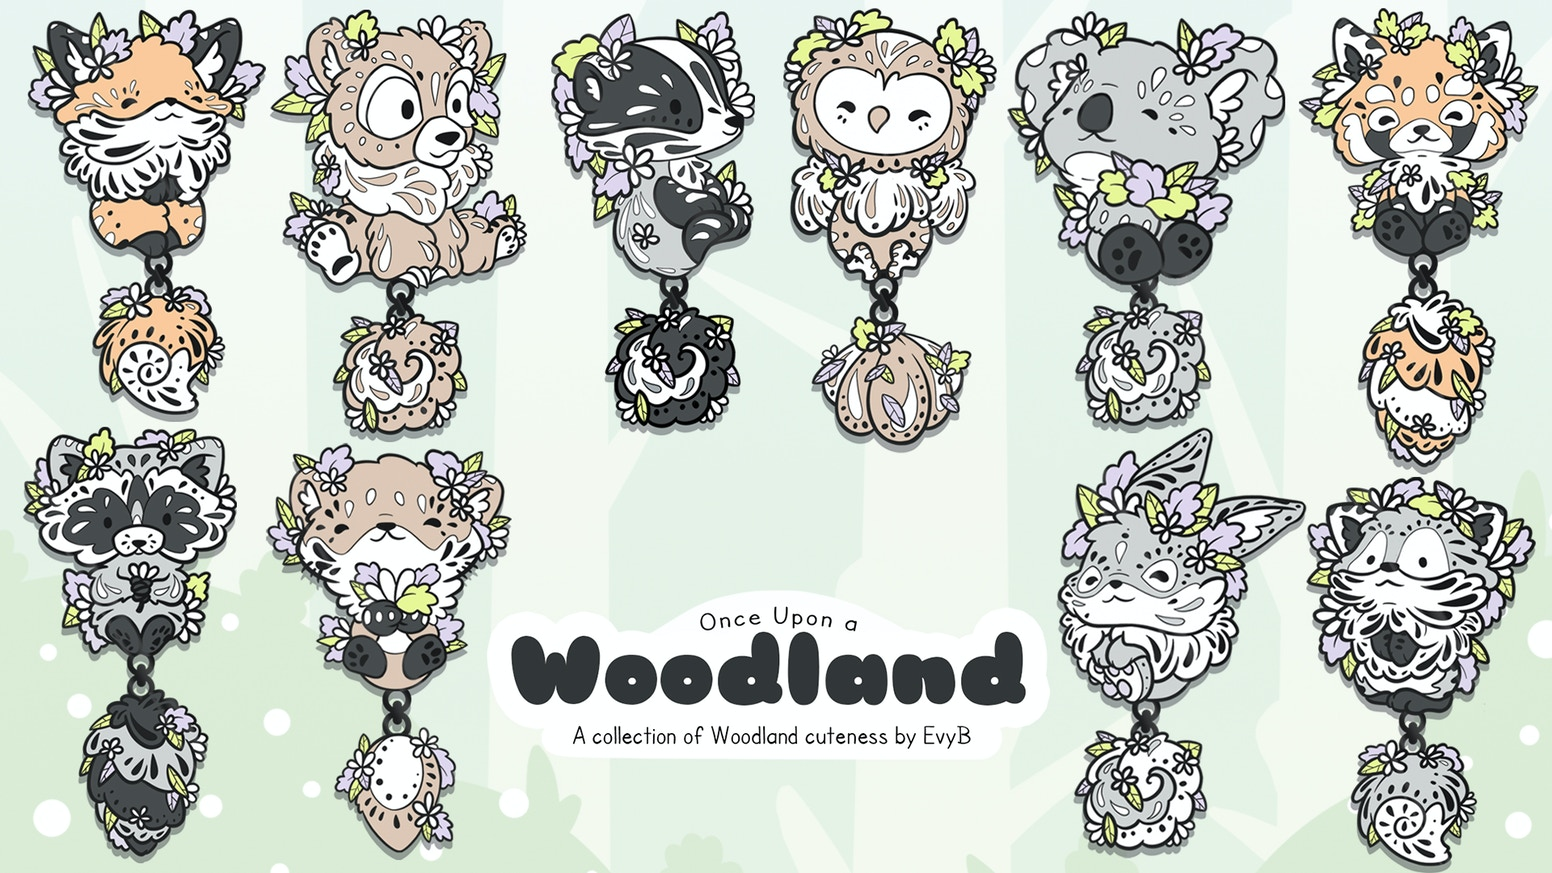 A whimsical collection of whimsical Woodland pins with dangling tails, available in black nickel and gold style plating.